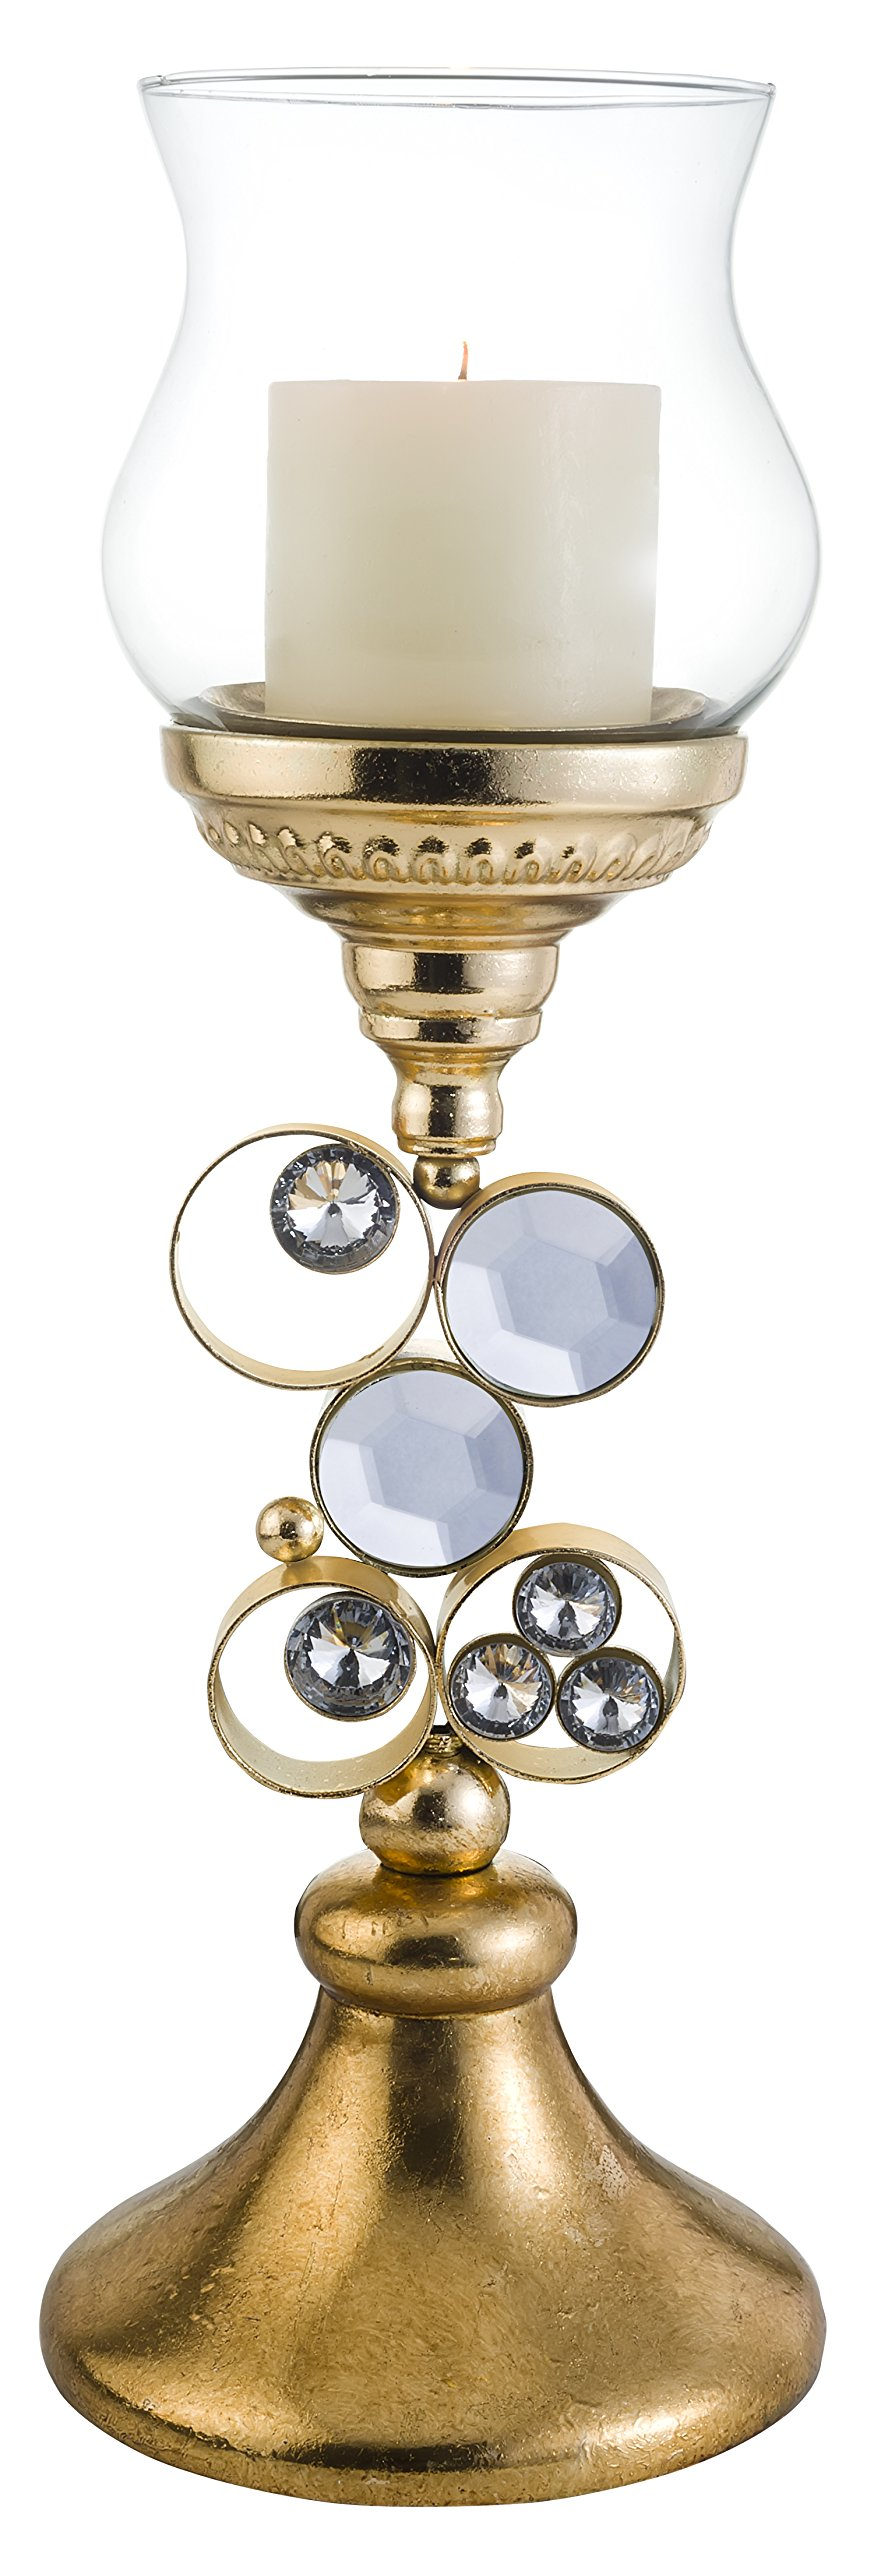 OK Lighting Metallic Glimmer of Gold Candleholder with Out Candle, 18.0'' by OK Lighting